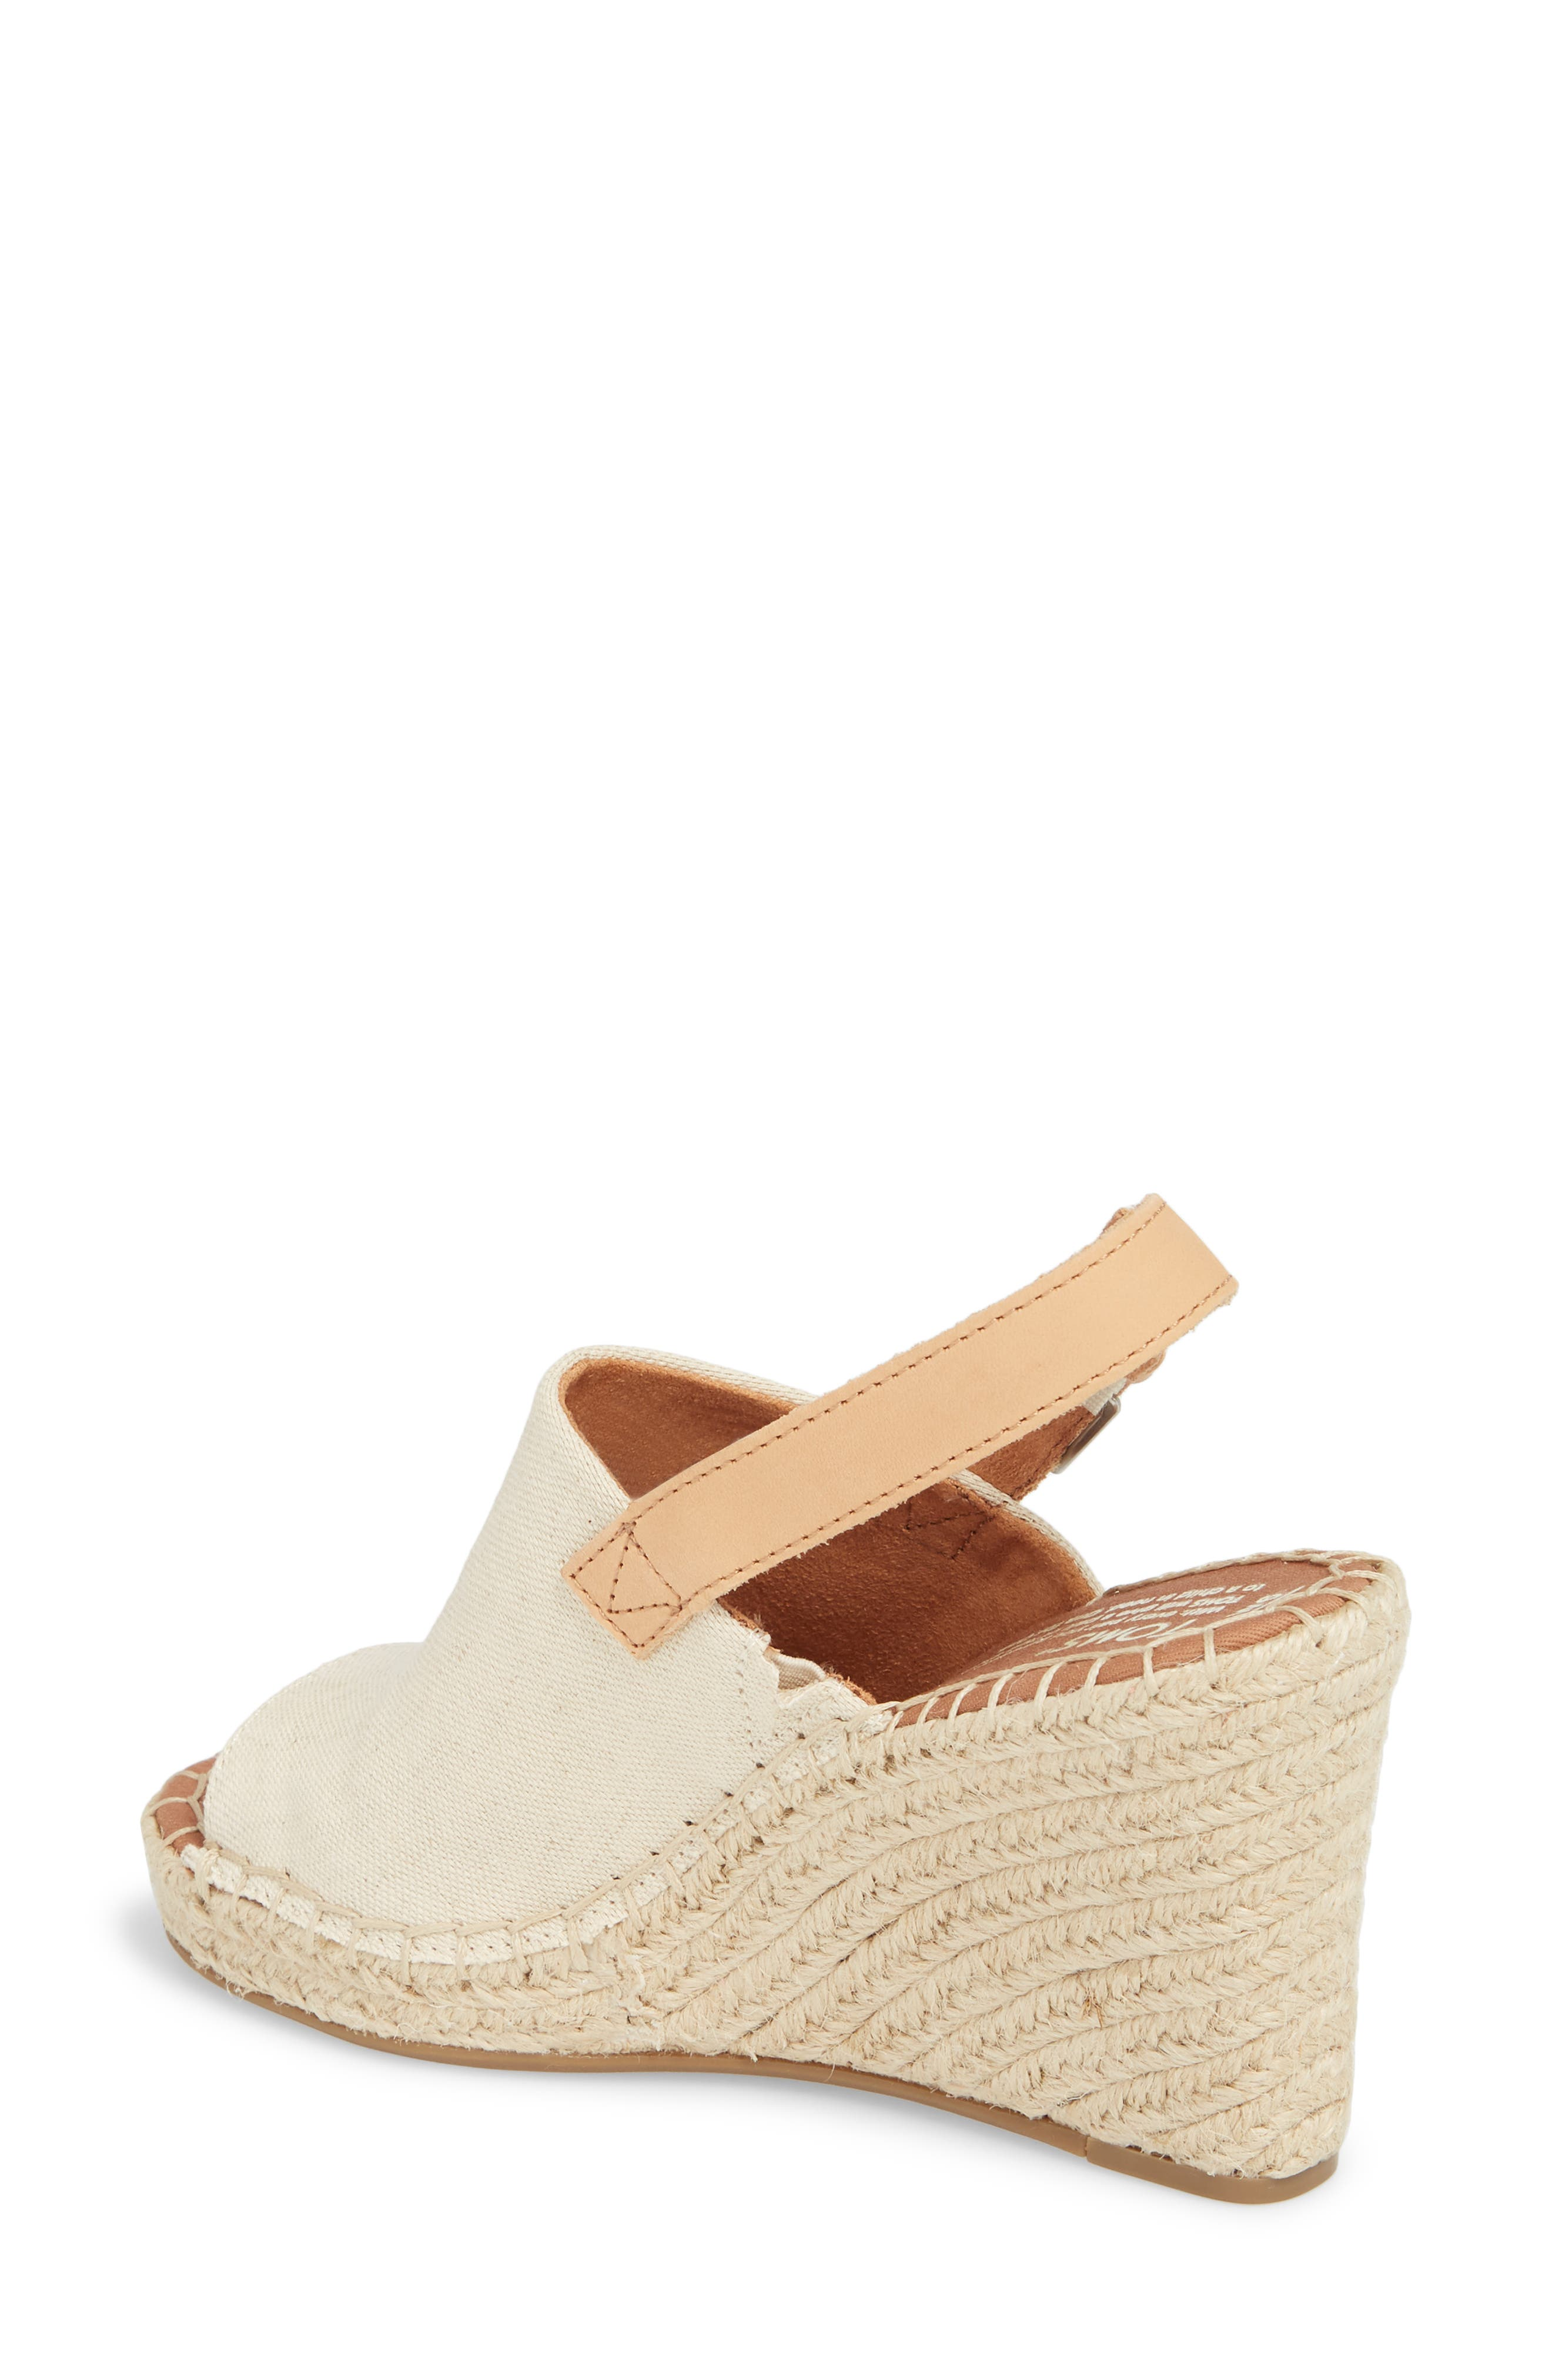 Monica Slingback Wedge,                             Alternate thumbnail 2, color,                             NATURAL HEMP/ LEATHER